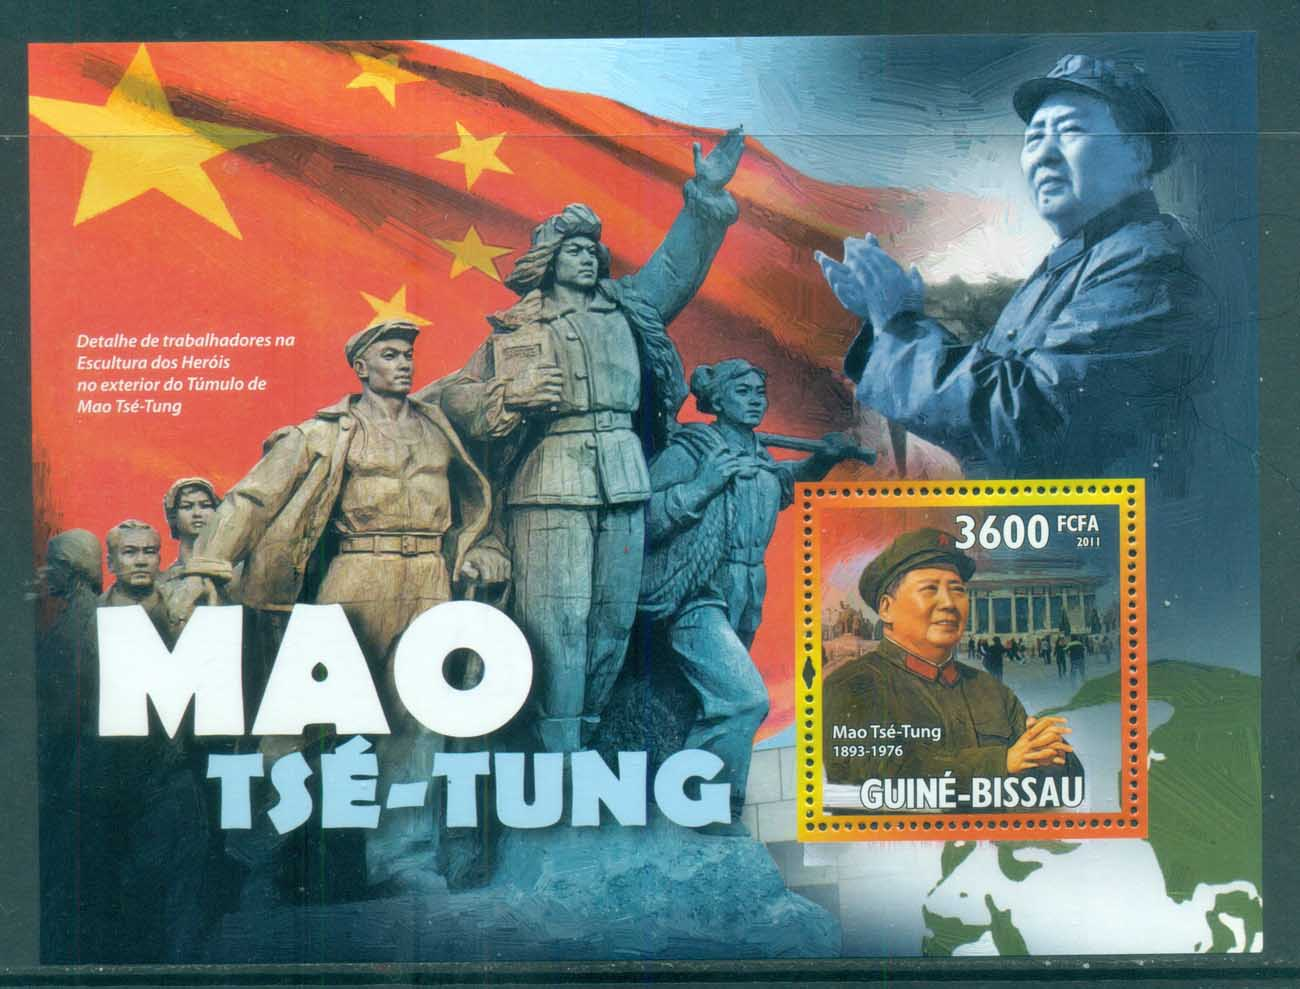 Guinea Bissau 2011 Famous People, Asia, Mao Tse Tung MS MUH GB11201b